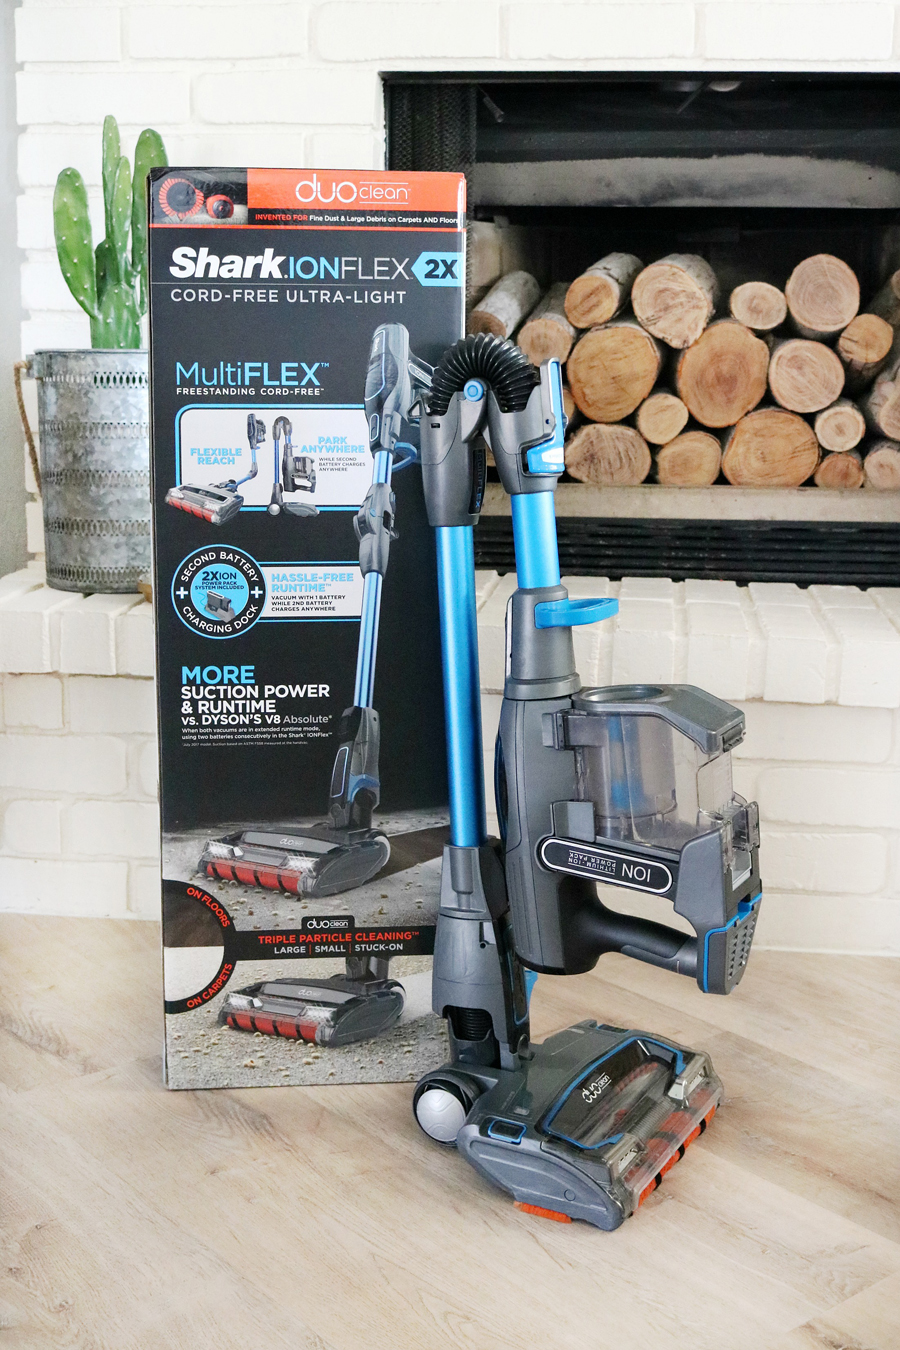 Shark IONFlex Cordless Ultra-Light Vacuum Review